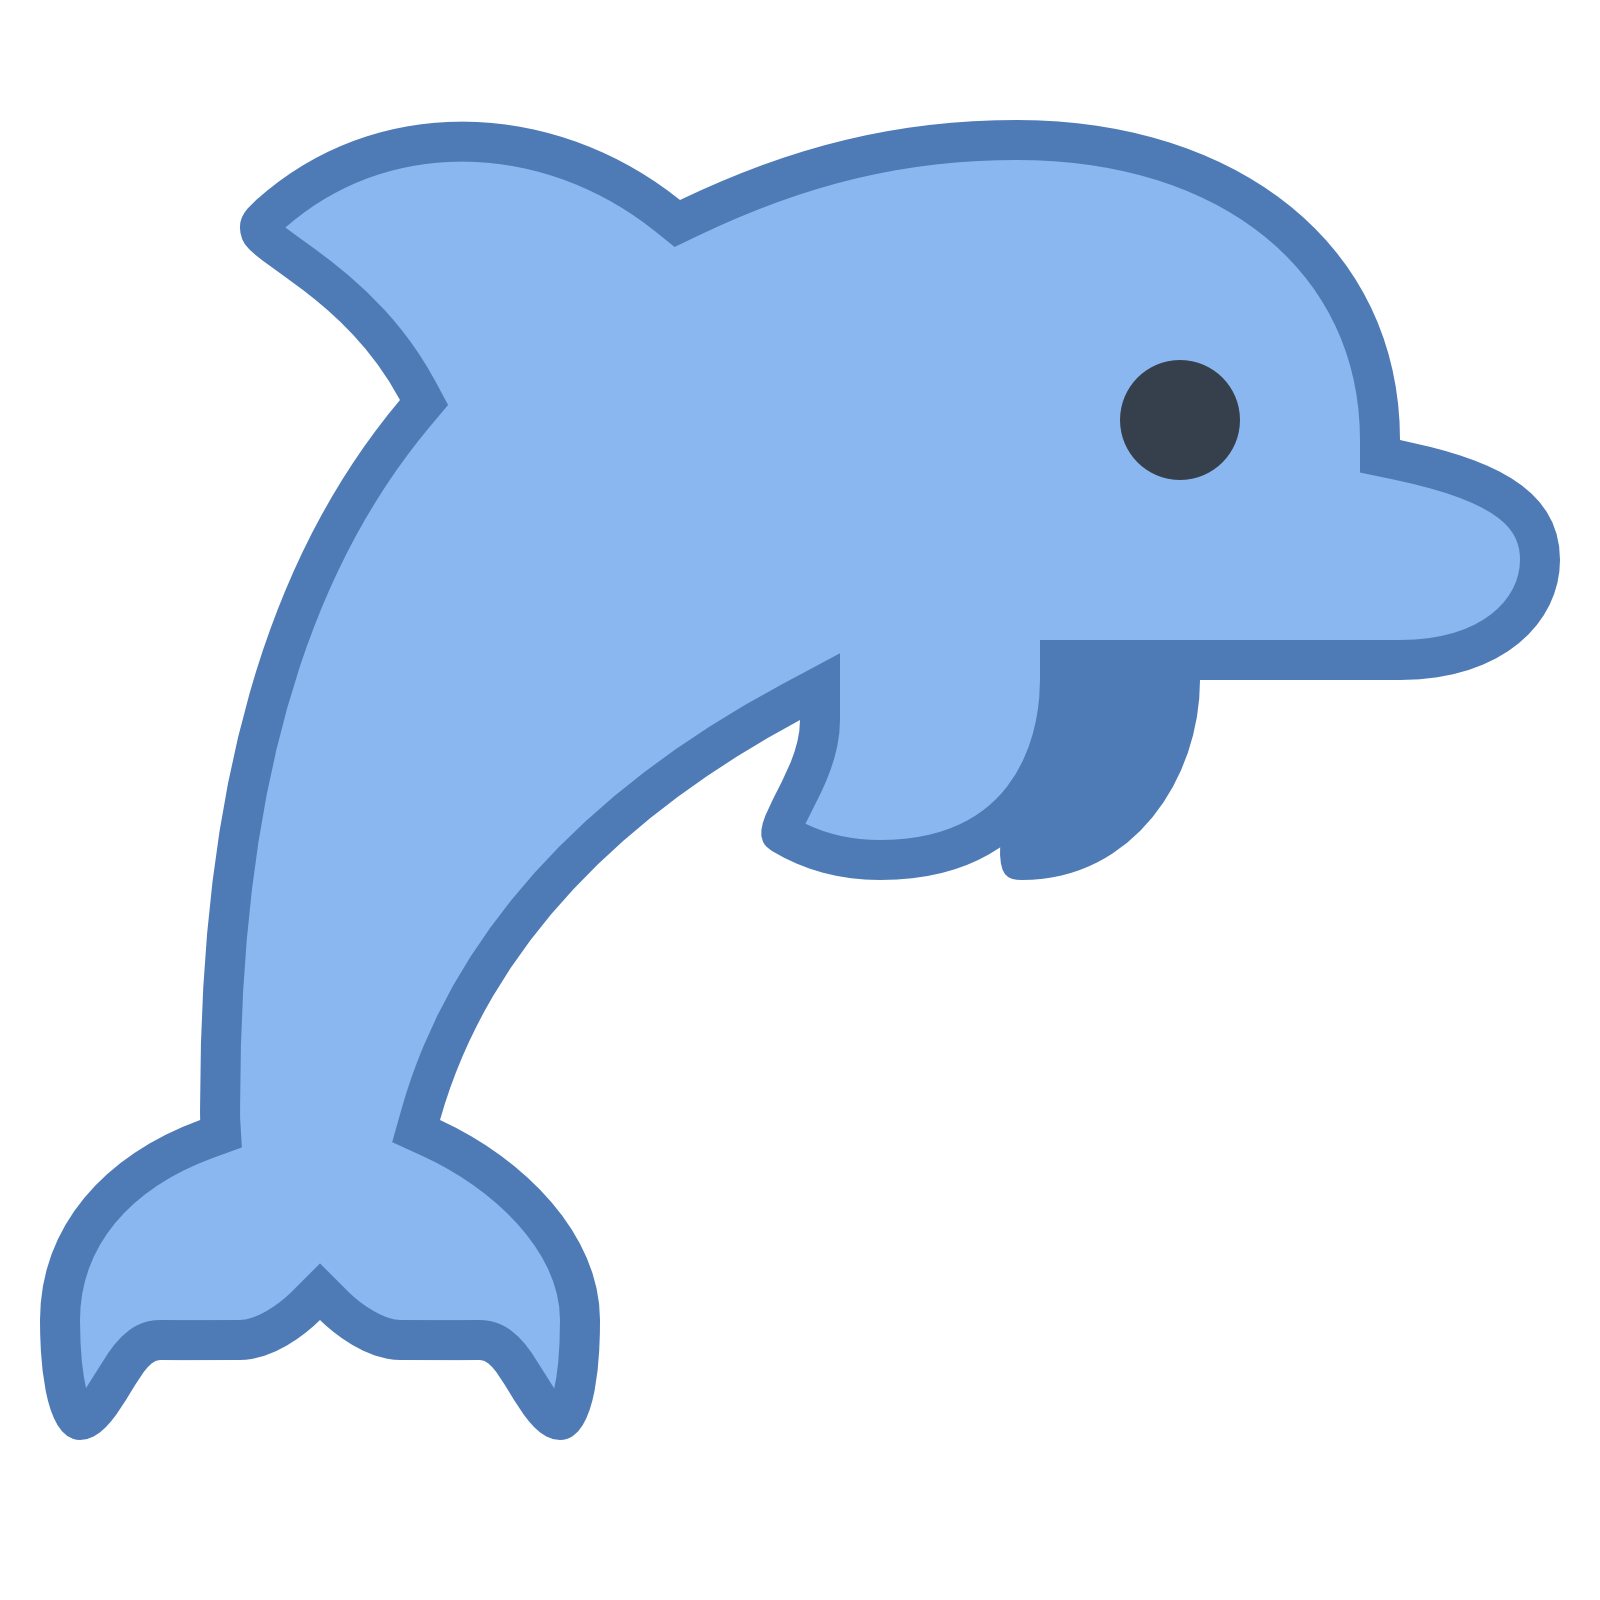 Dolphin icon png. Free download at icons